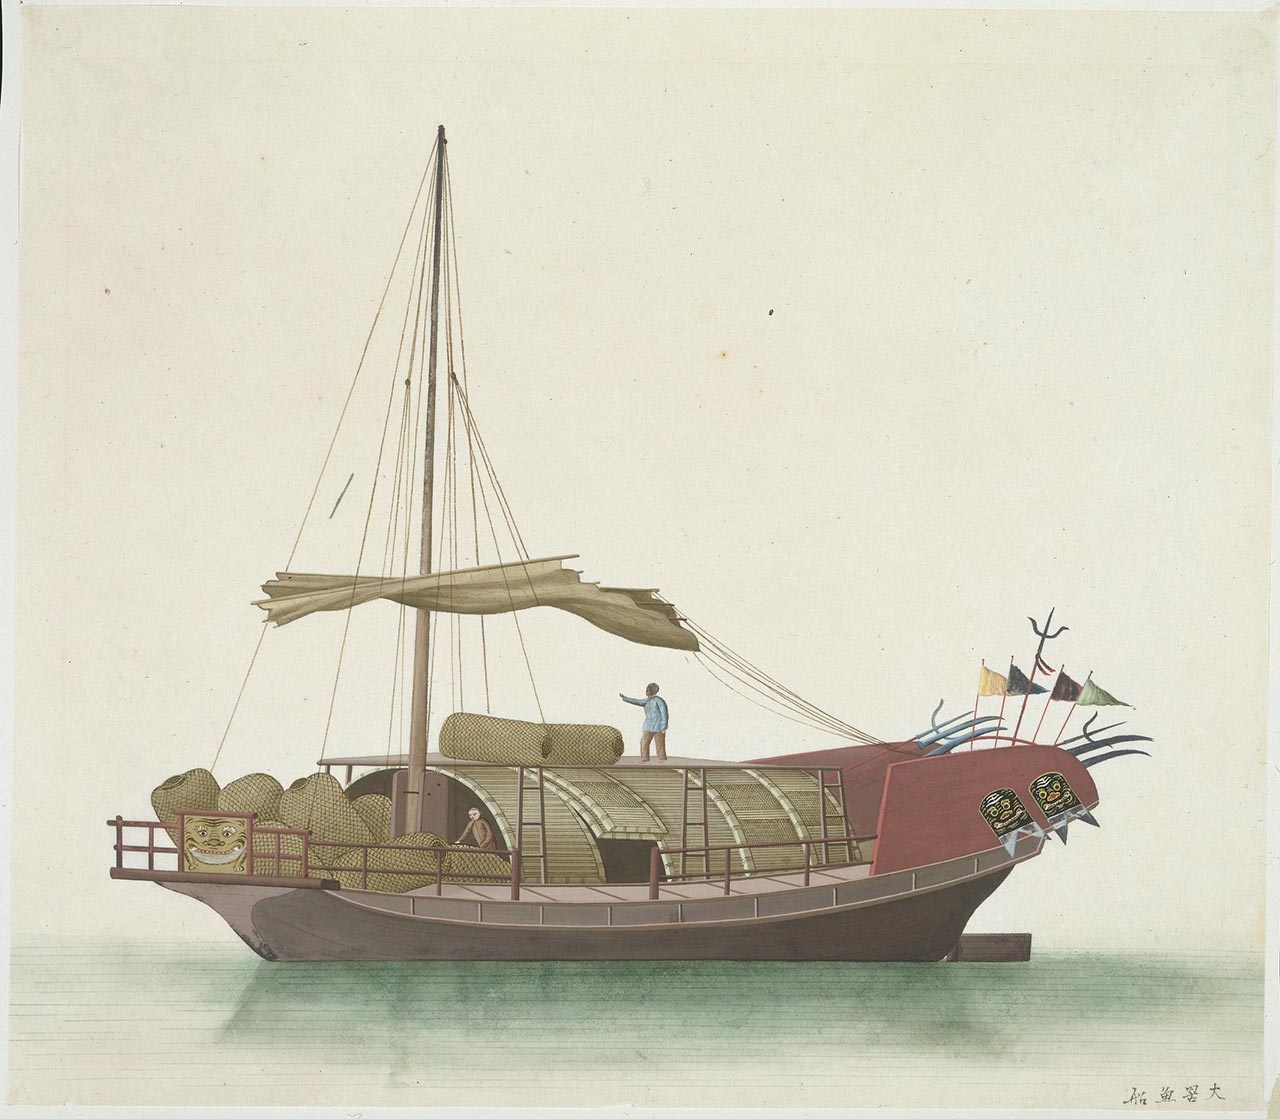 A large trawler, equipped with bamboo fishing baskets and nets.